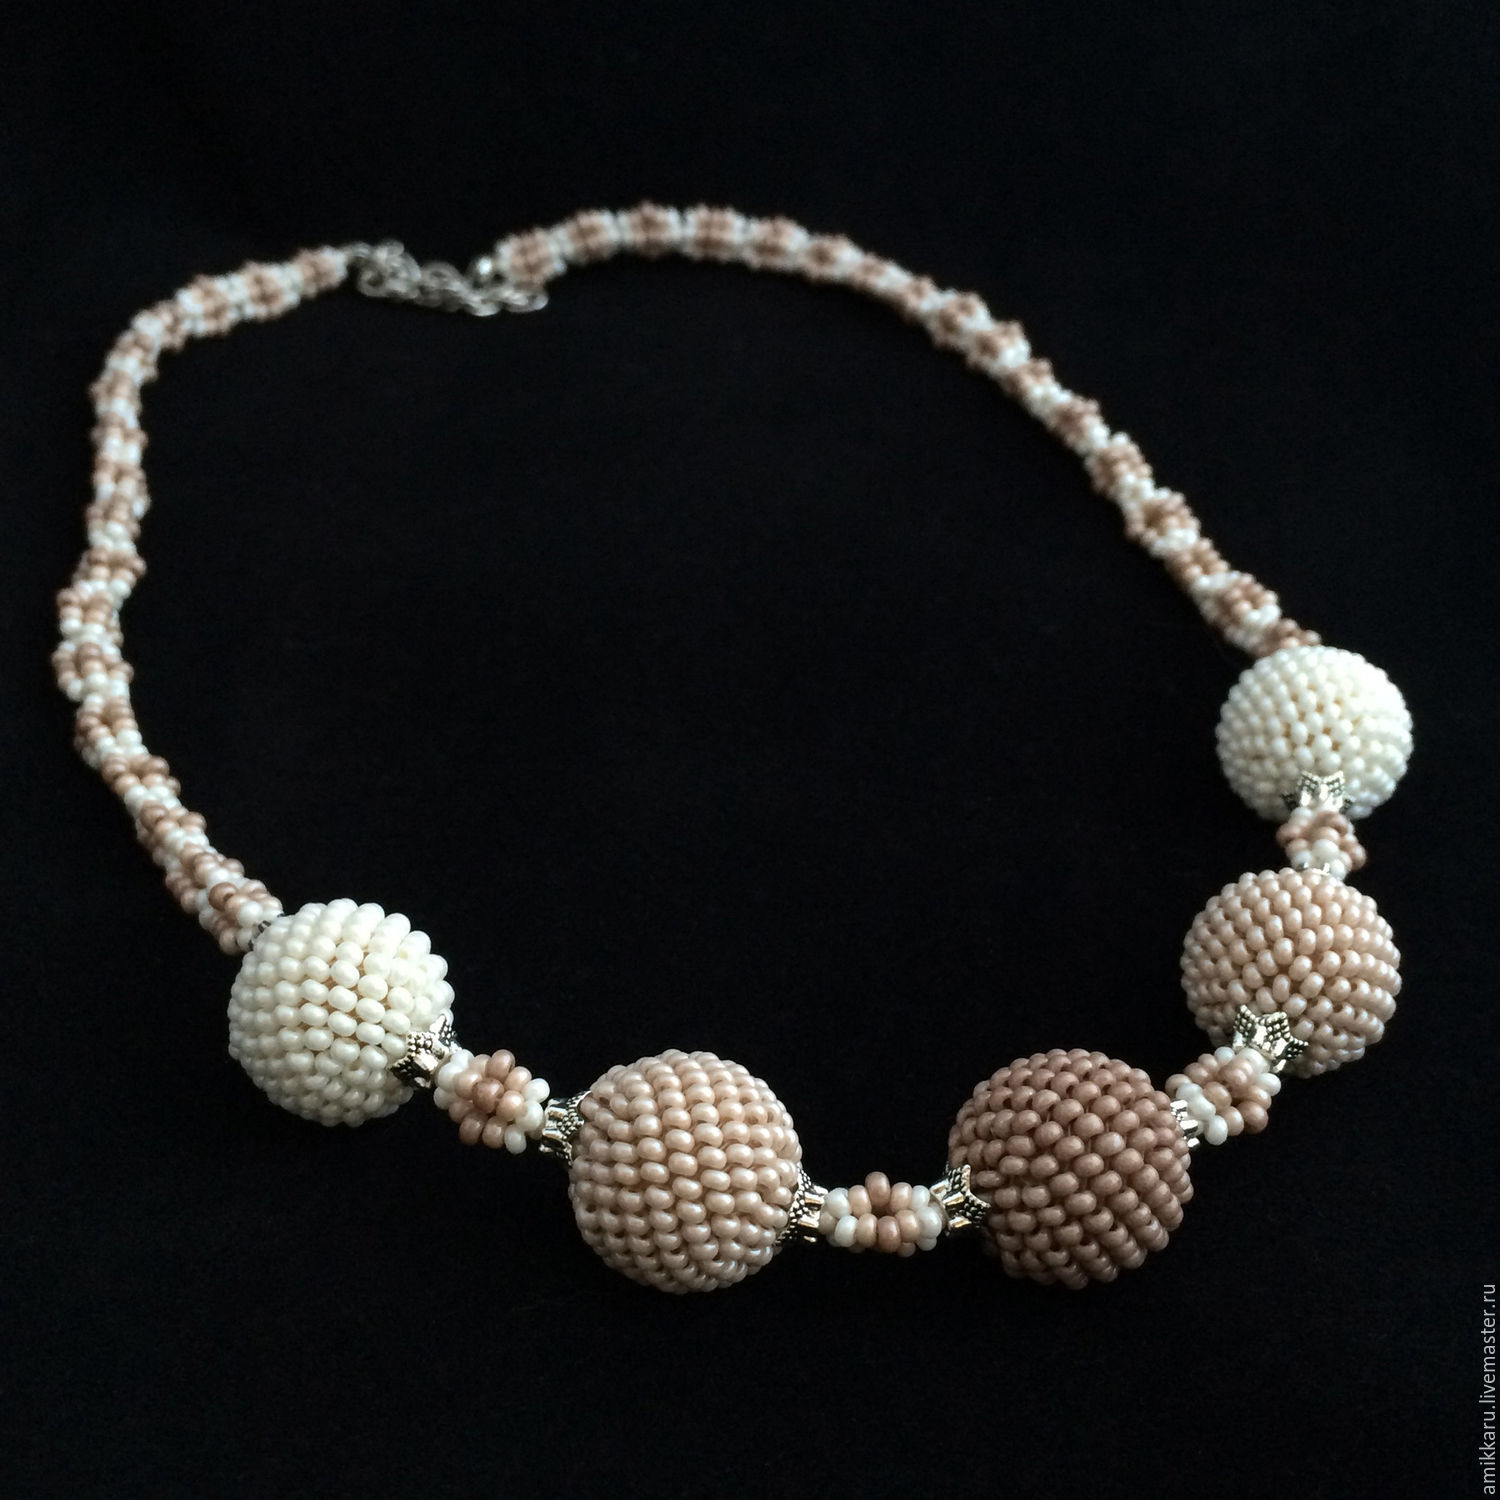 Beaded necklace 'Cappuccino', Necklace, Kireevsk,  Фото №1